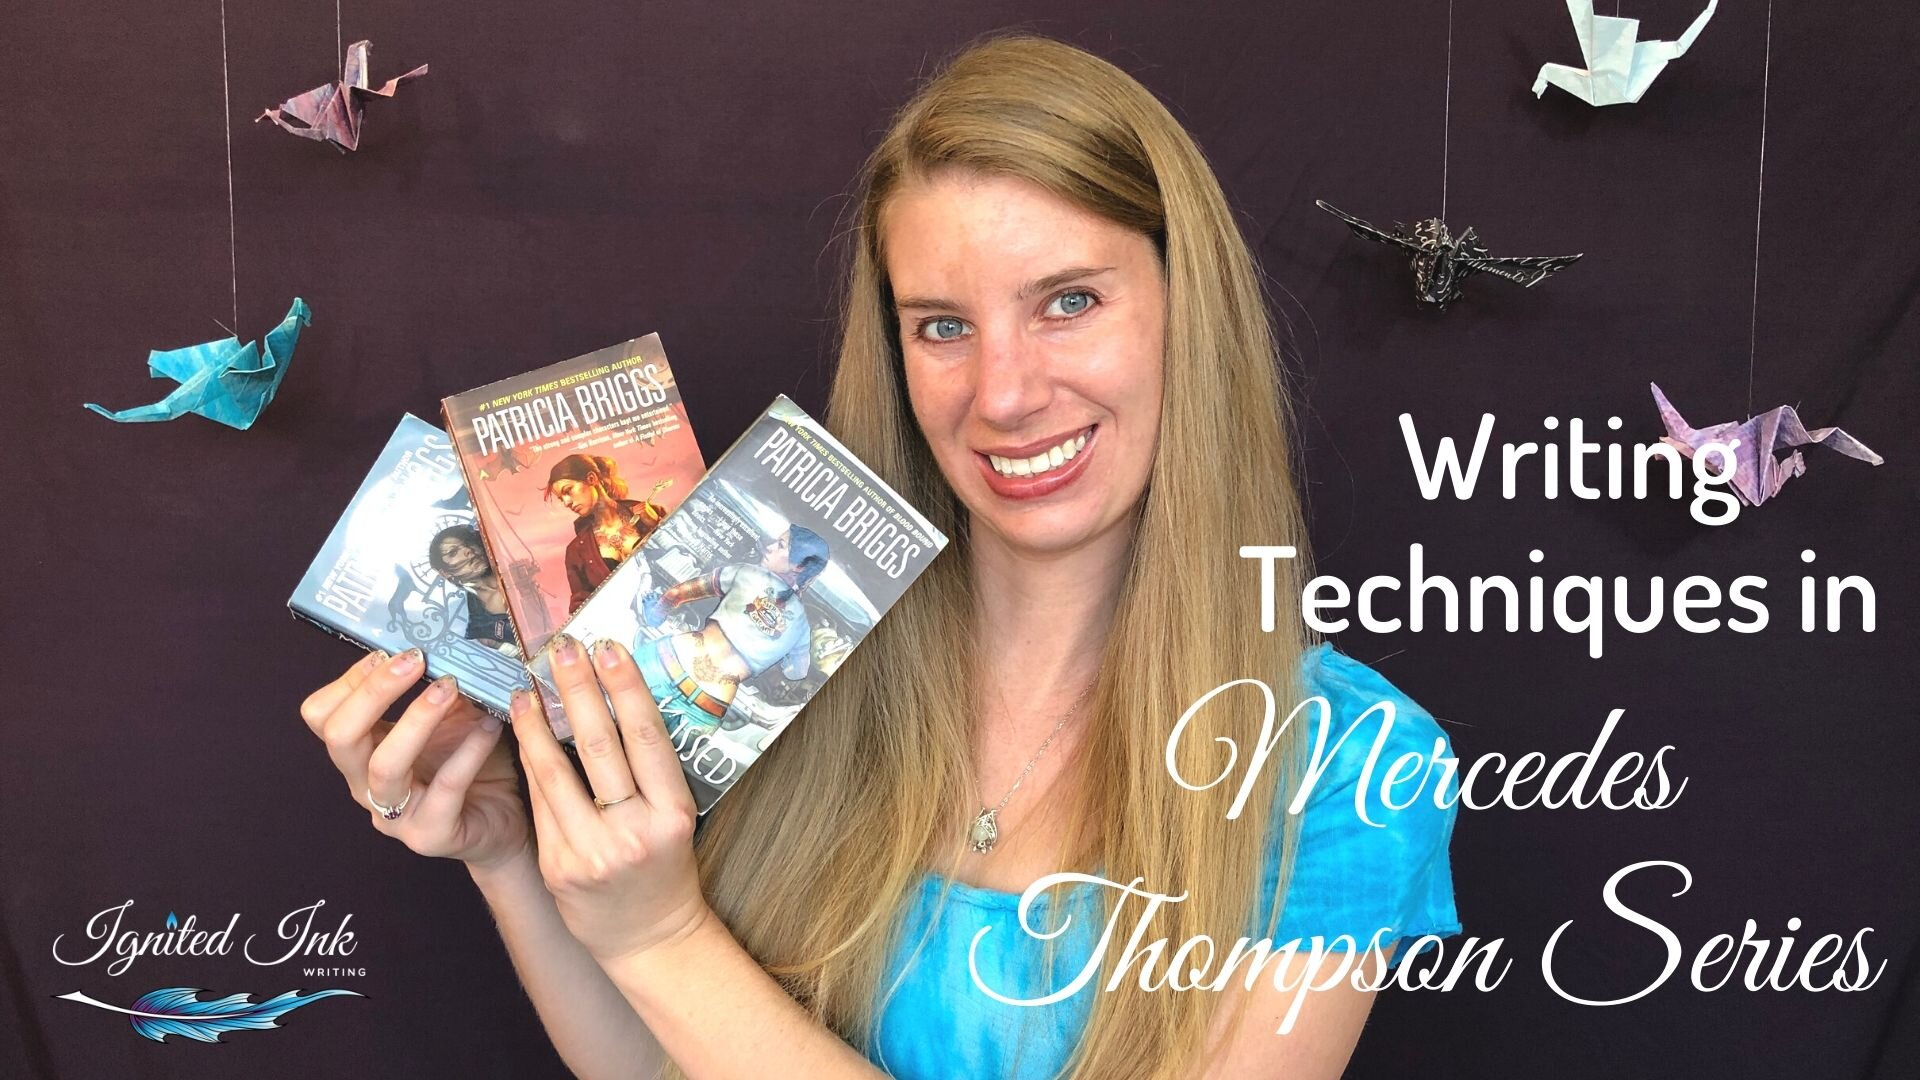 Mercedes Thompson Book Series: How to Read Like a Writer ...